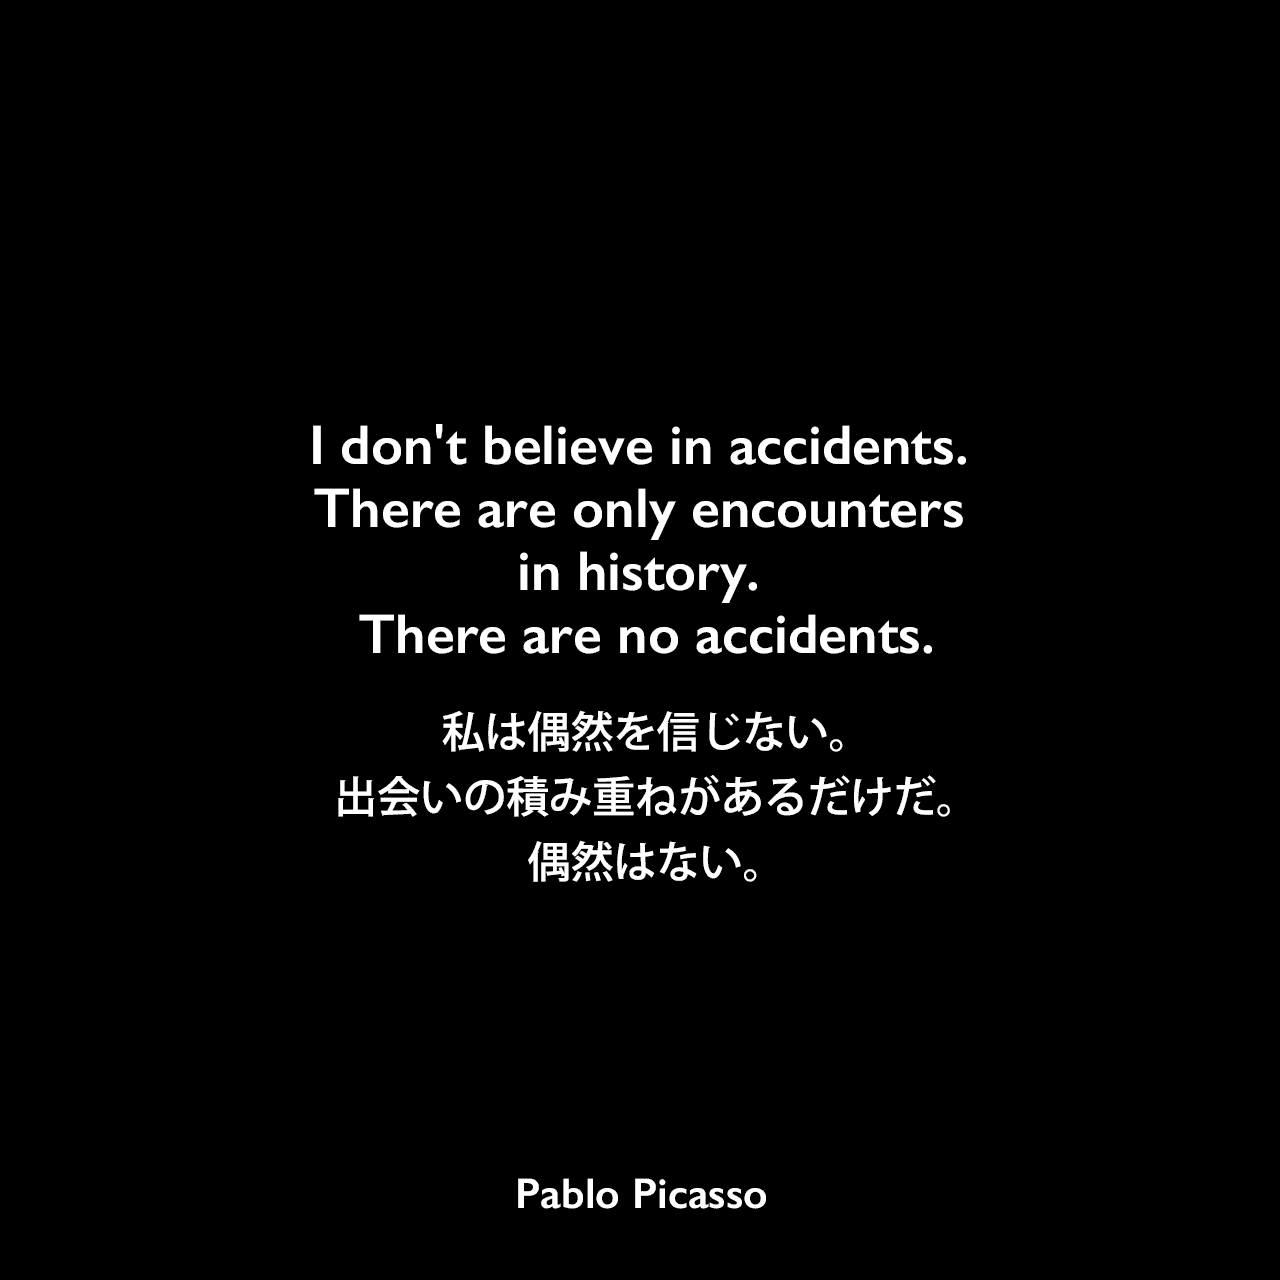 I don't believe in accidents. There are only encounters in history. There are no accidents.私は偶然を信じない。出会いの積み重ねがあるだけだ。偶然はない。Pablo Picasso